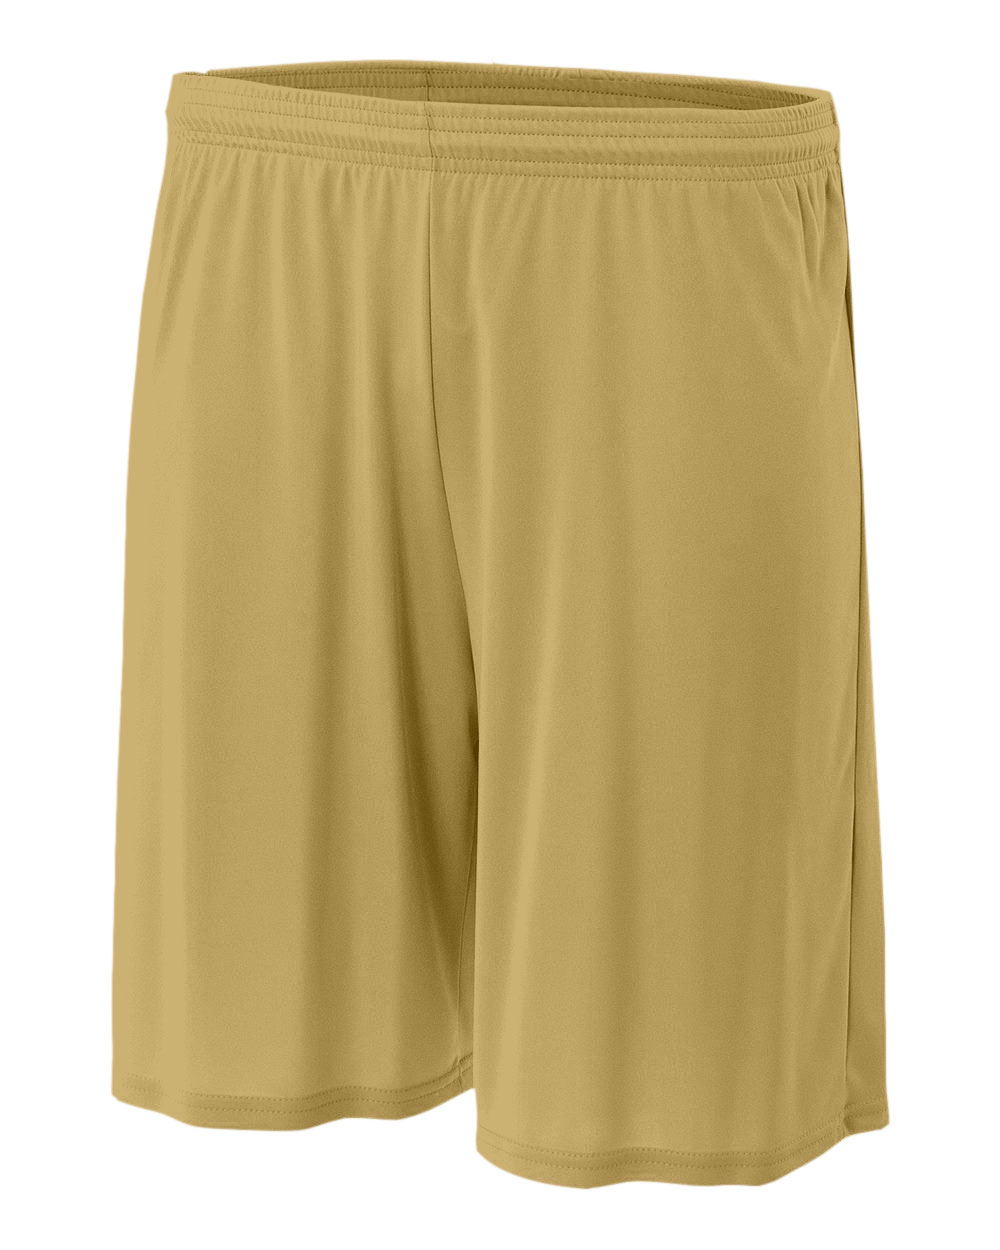 A4 Mens 9 Cooling Performance Short